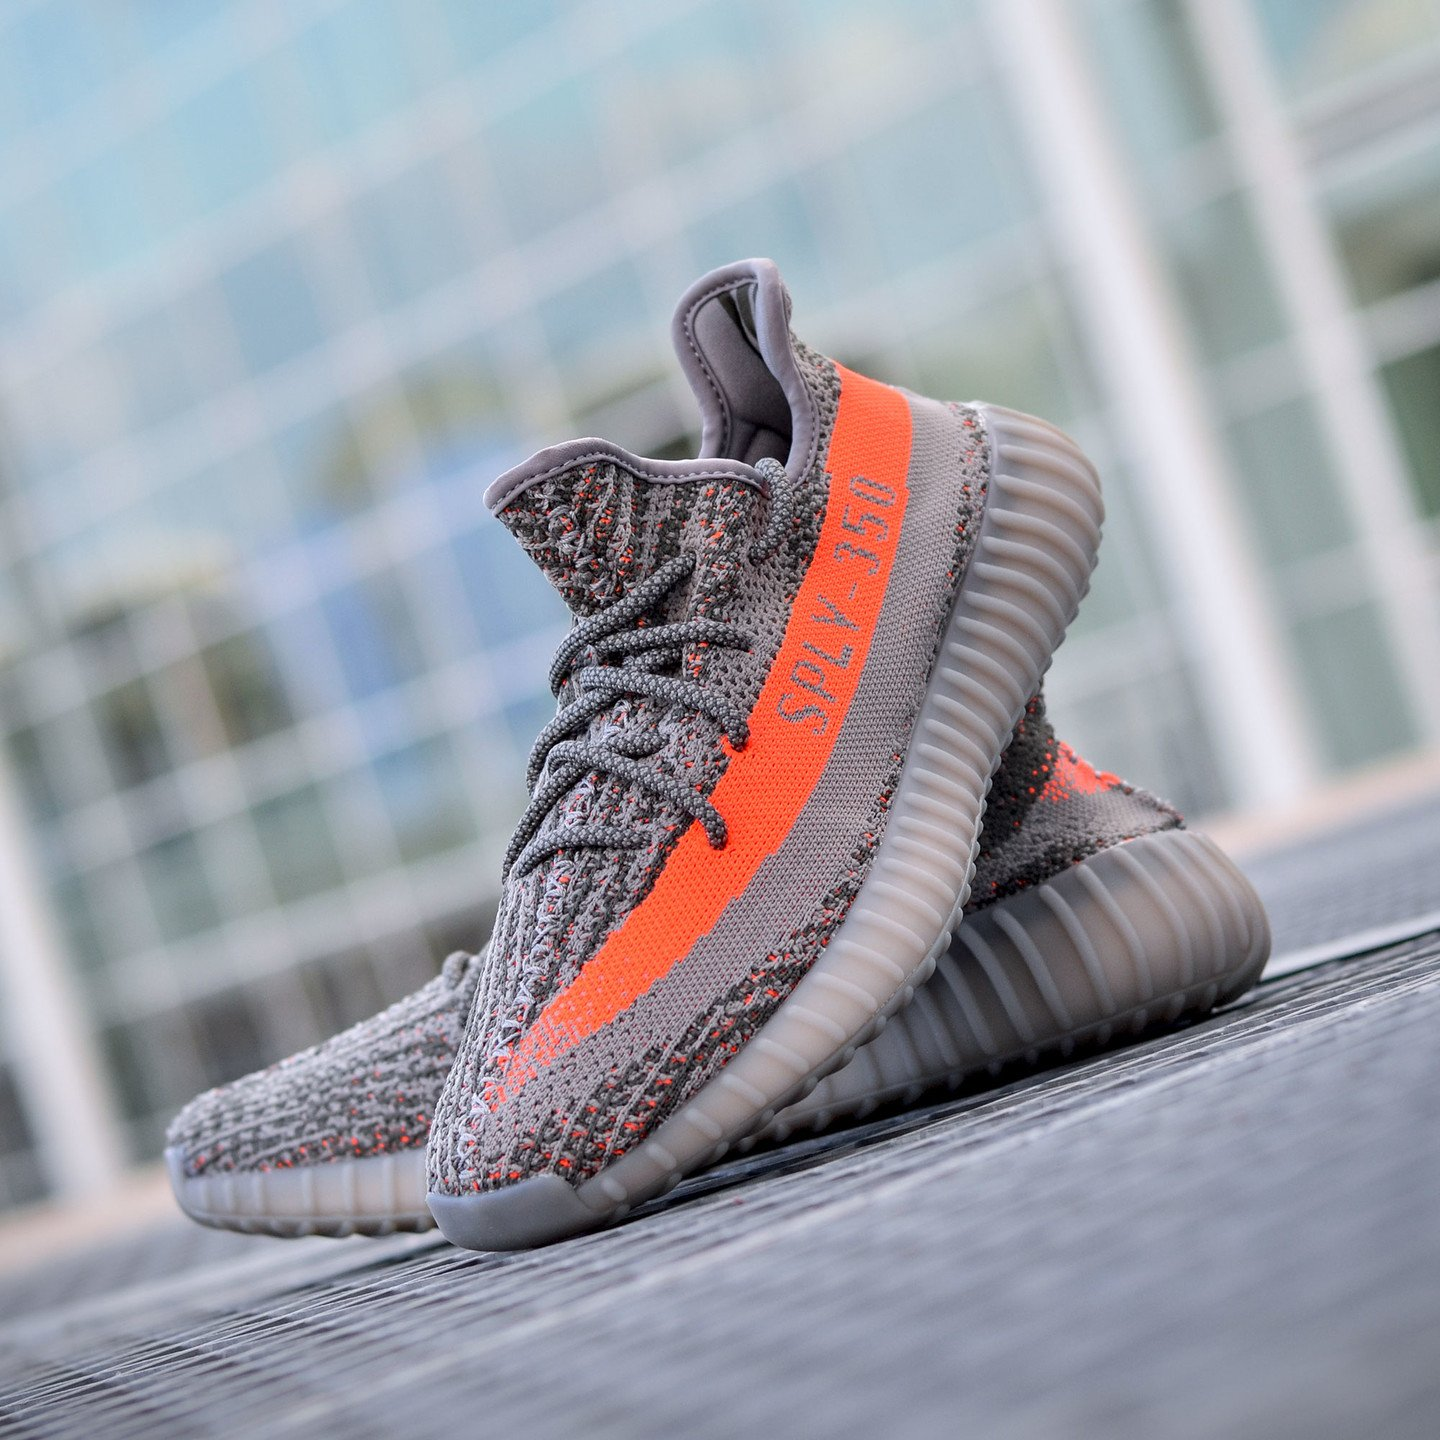 Adidas Yeezy Boost 350 V2 Steel Grey / Beluga / Solar Red BB1826